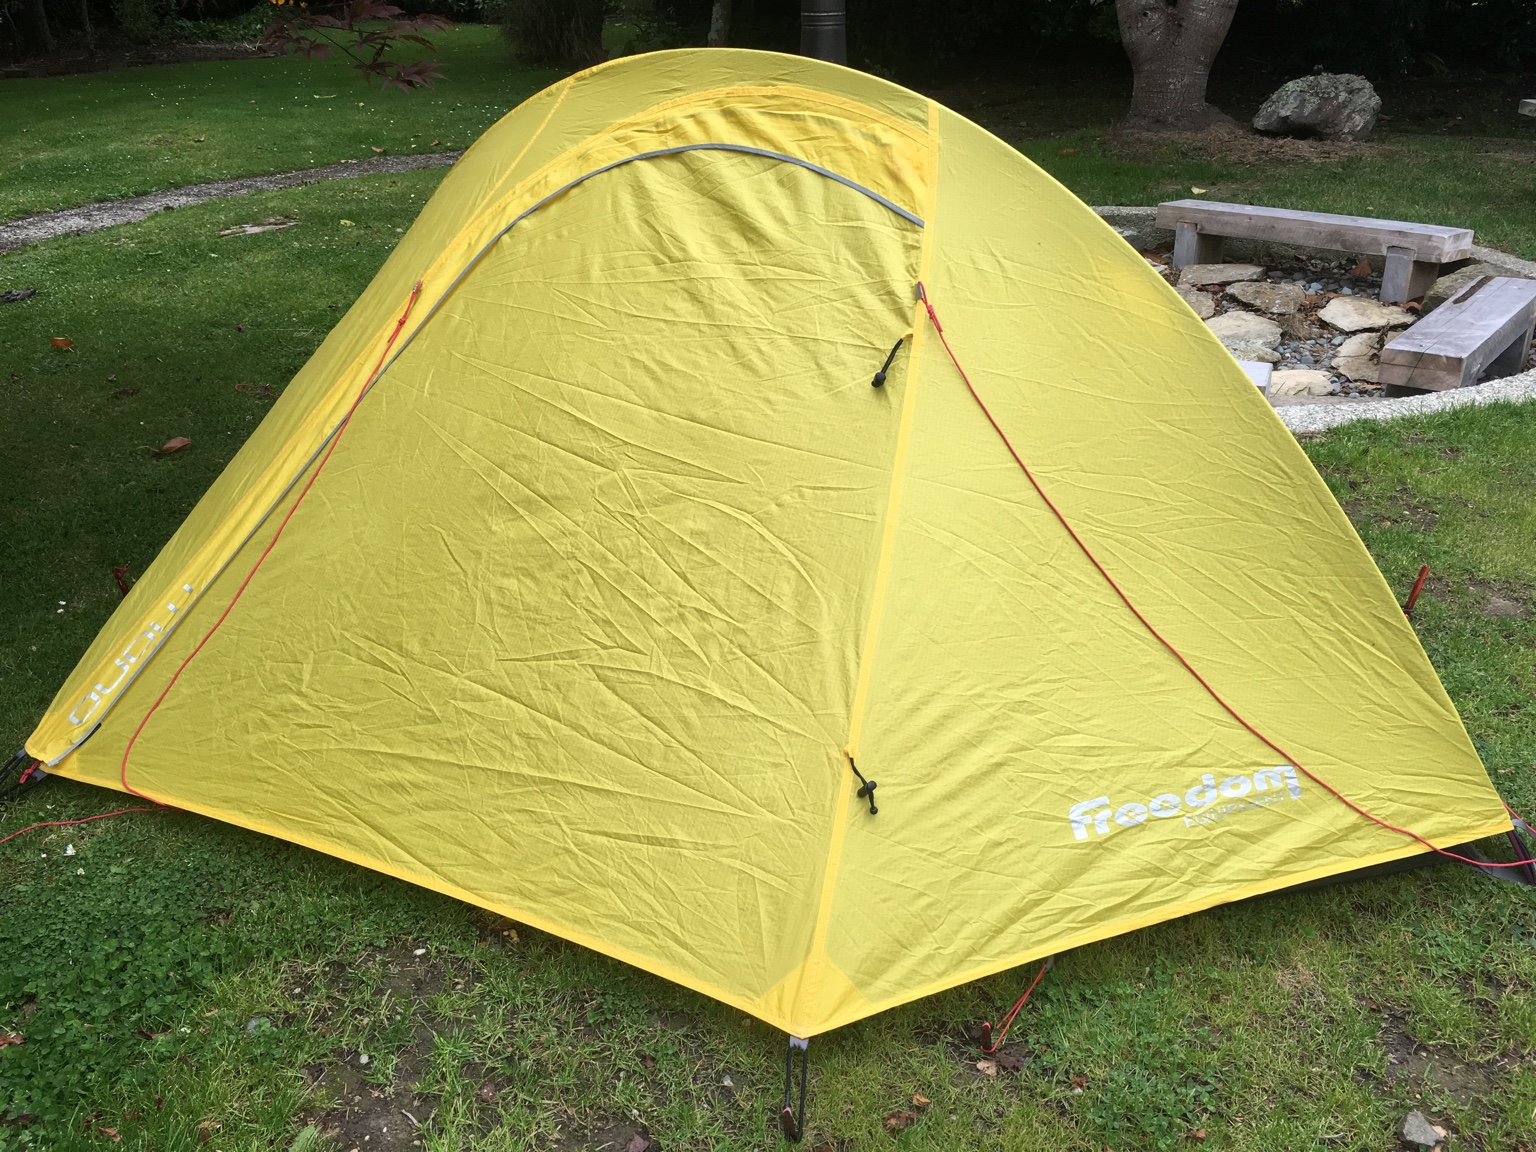 Also got an older Kathmandu Cisalpine 2 man tent which is in very good condition apart from a very small hole in one corner of the mesh from a mouse chewing ... & FS: 1-man and 2-man tents FS